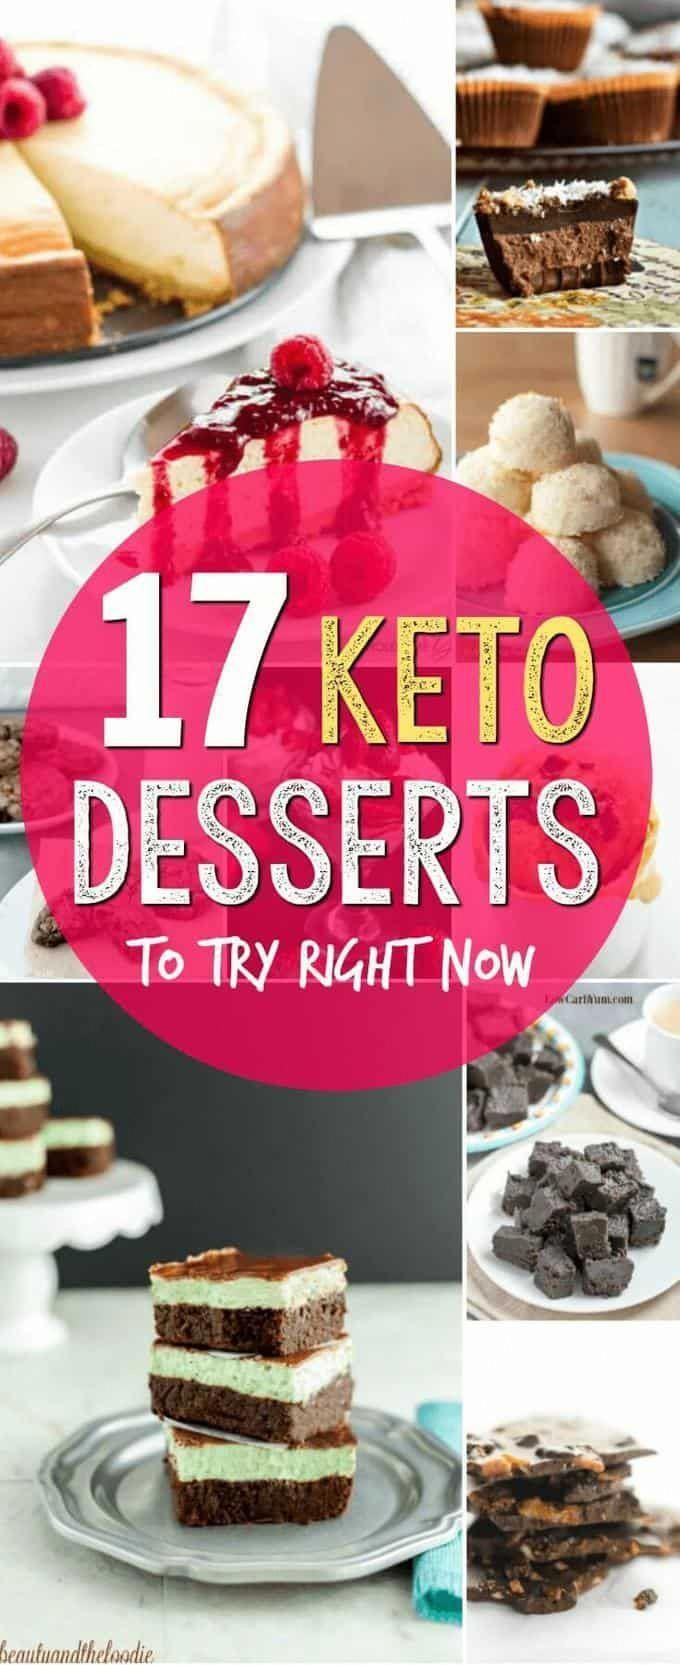 These keto desserts are so good you might feel like youre cheating on youre ke - Keto Brownies - Id